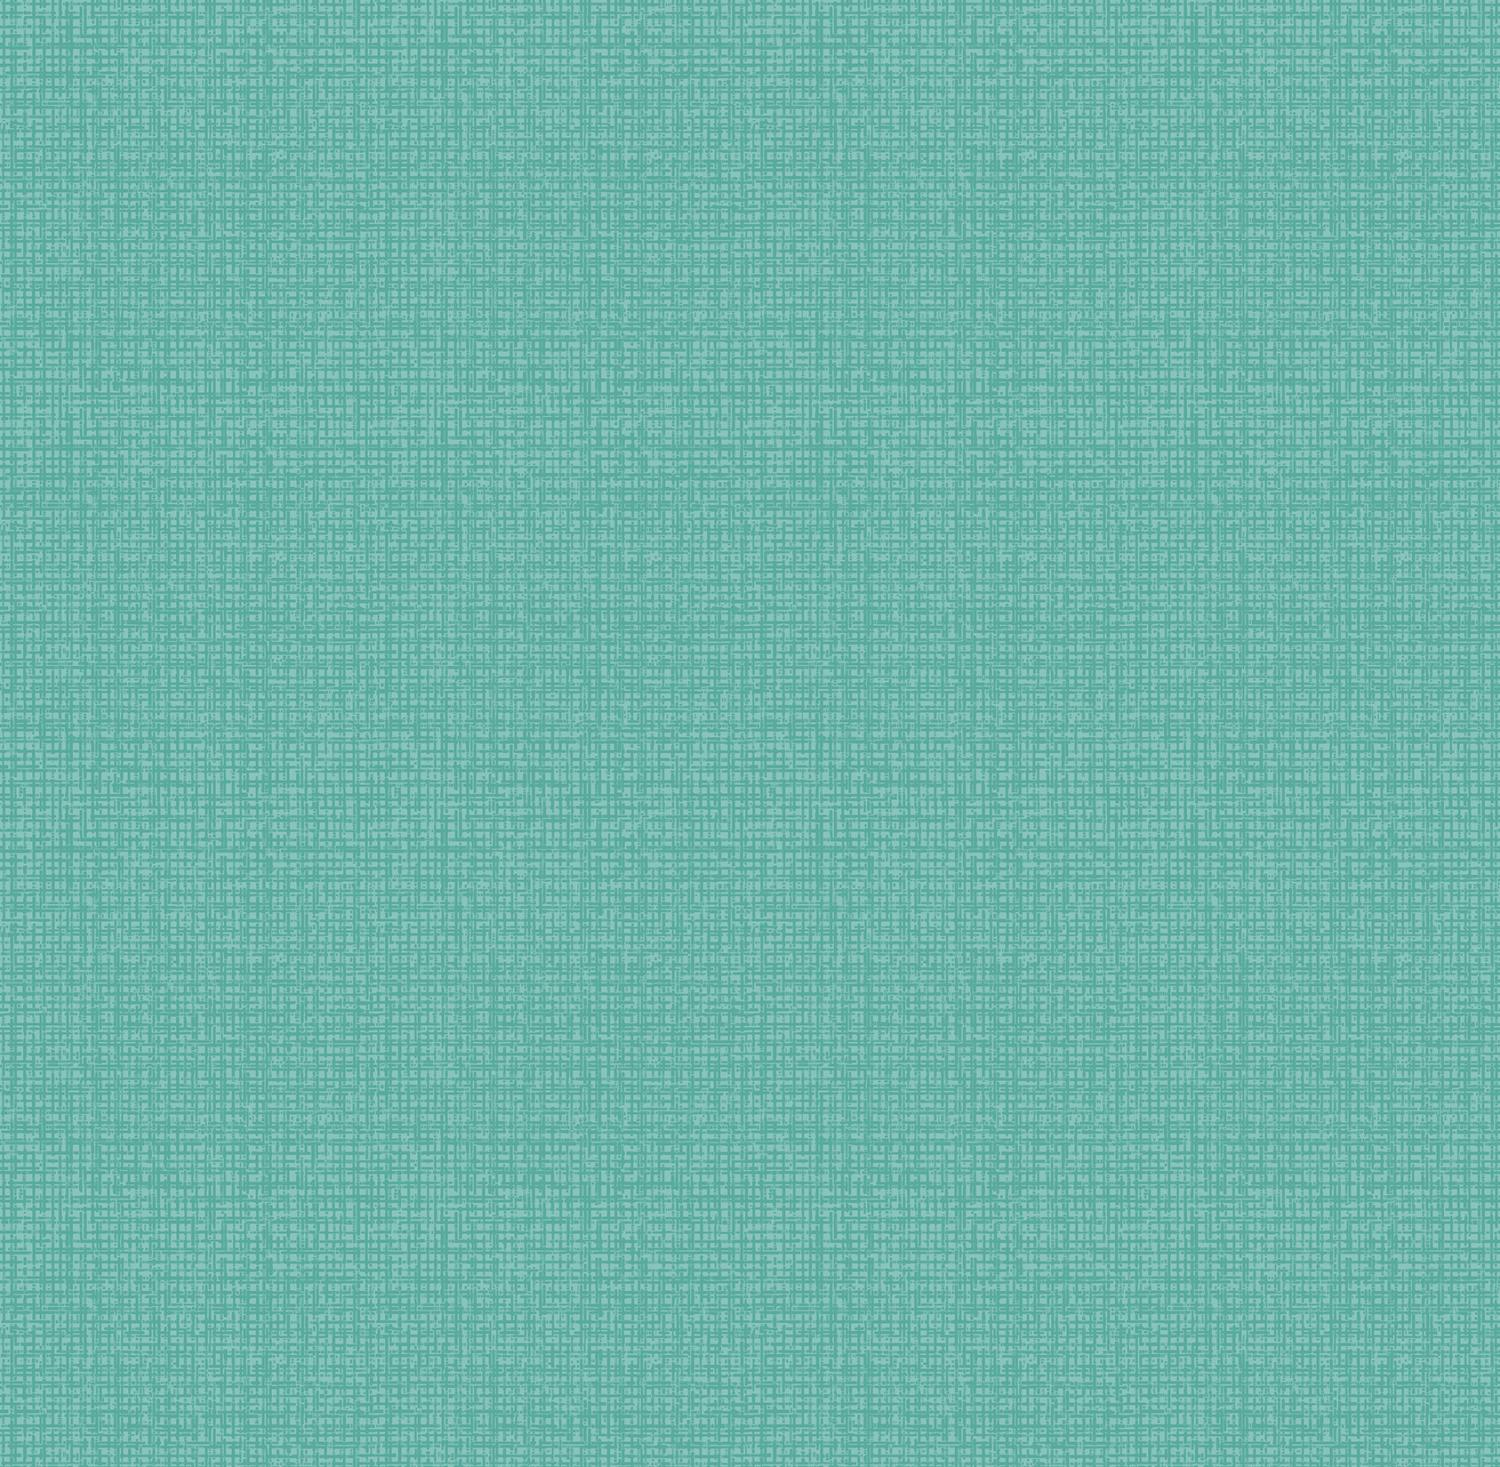 Color Weave #84 Turquoise